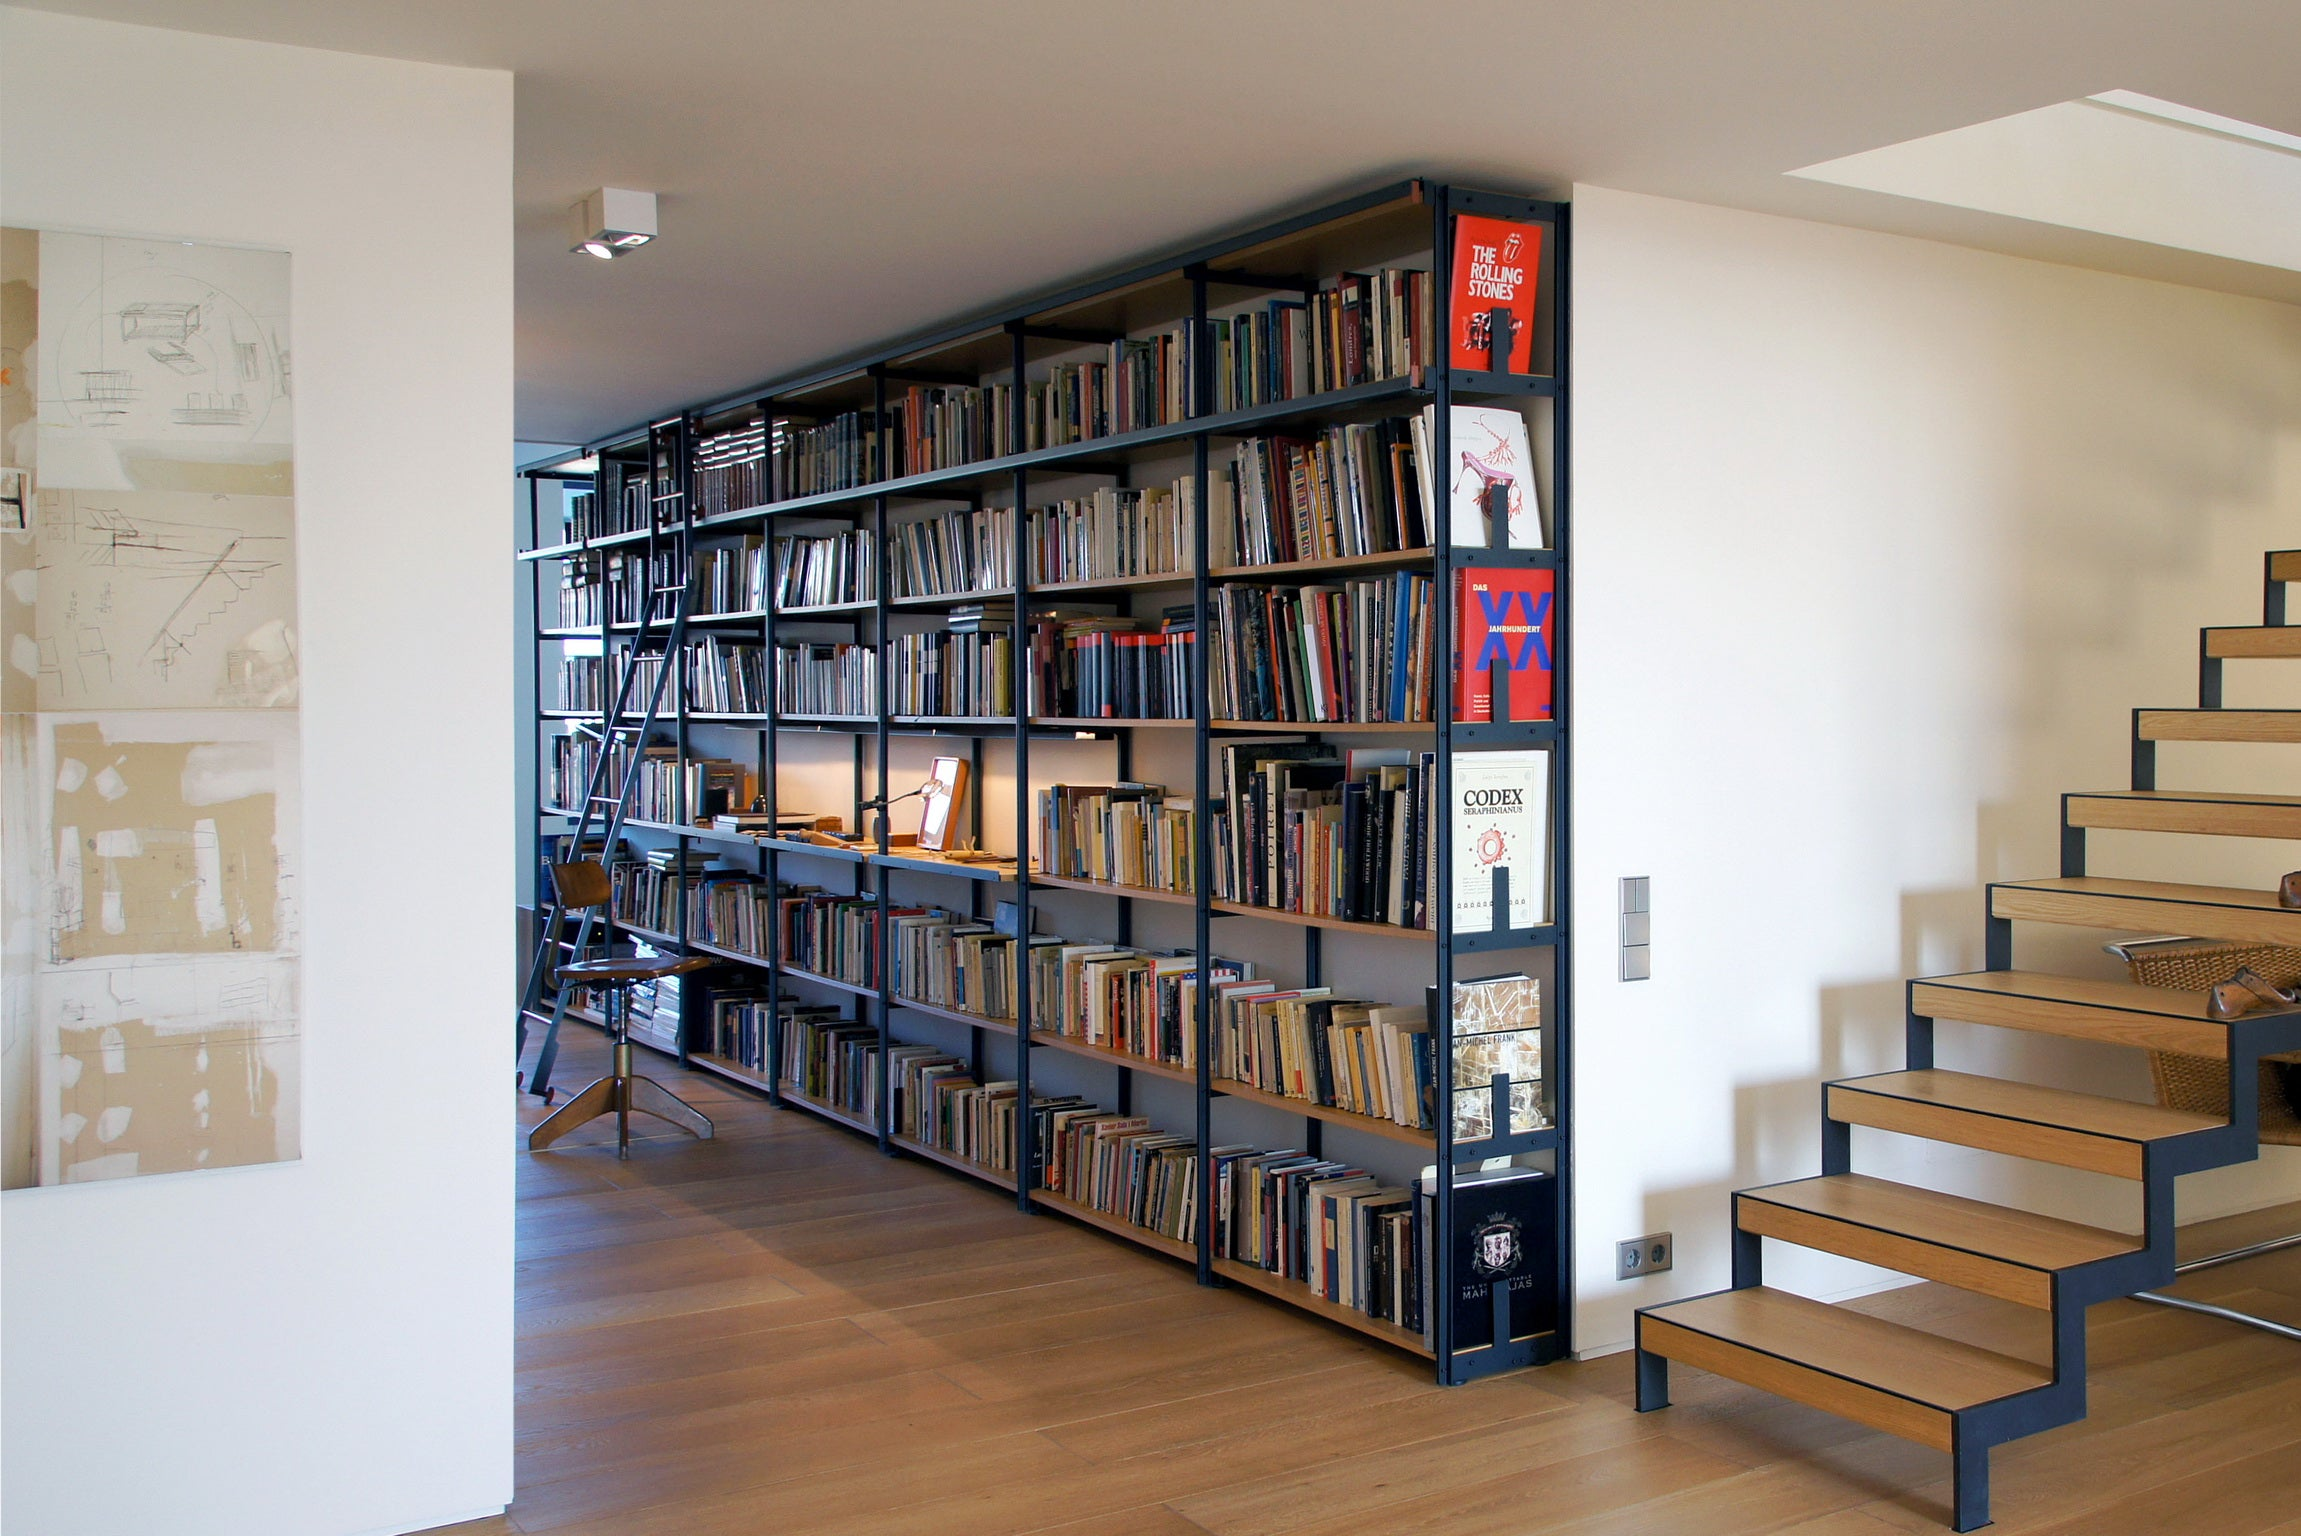 Tecnica Library Modular Shelving Bookcase By Jaume Tresserra For Dessie